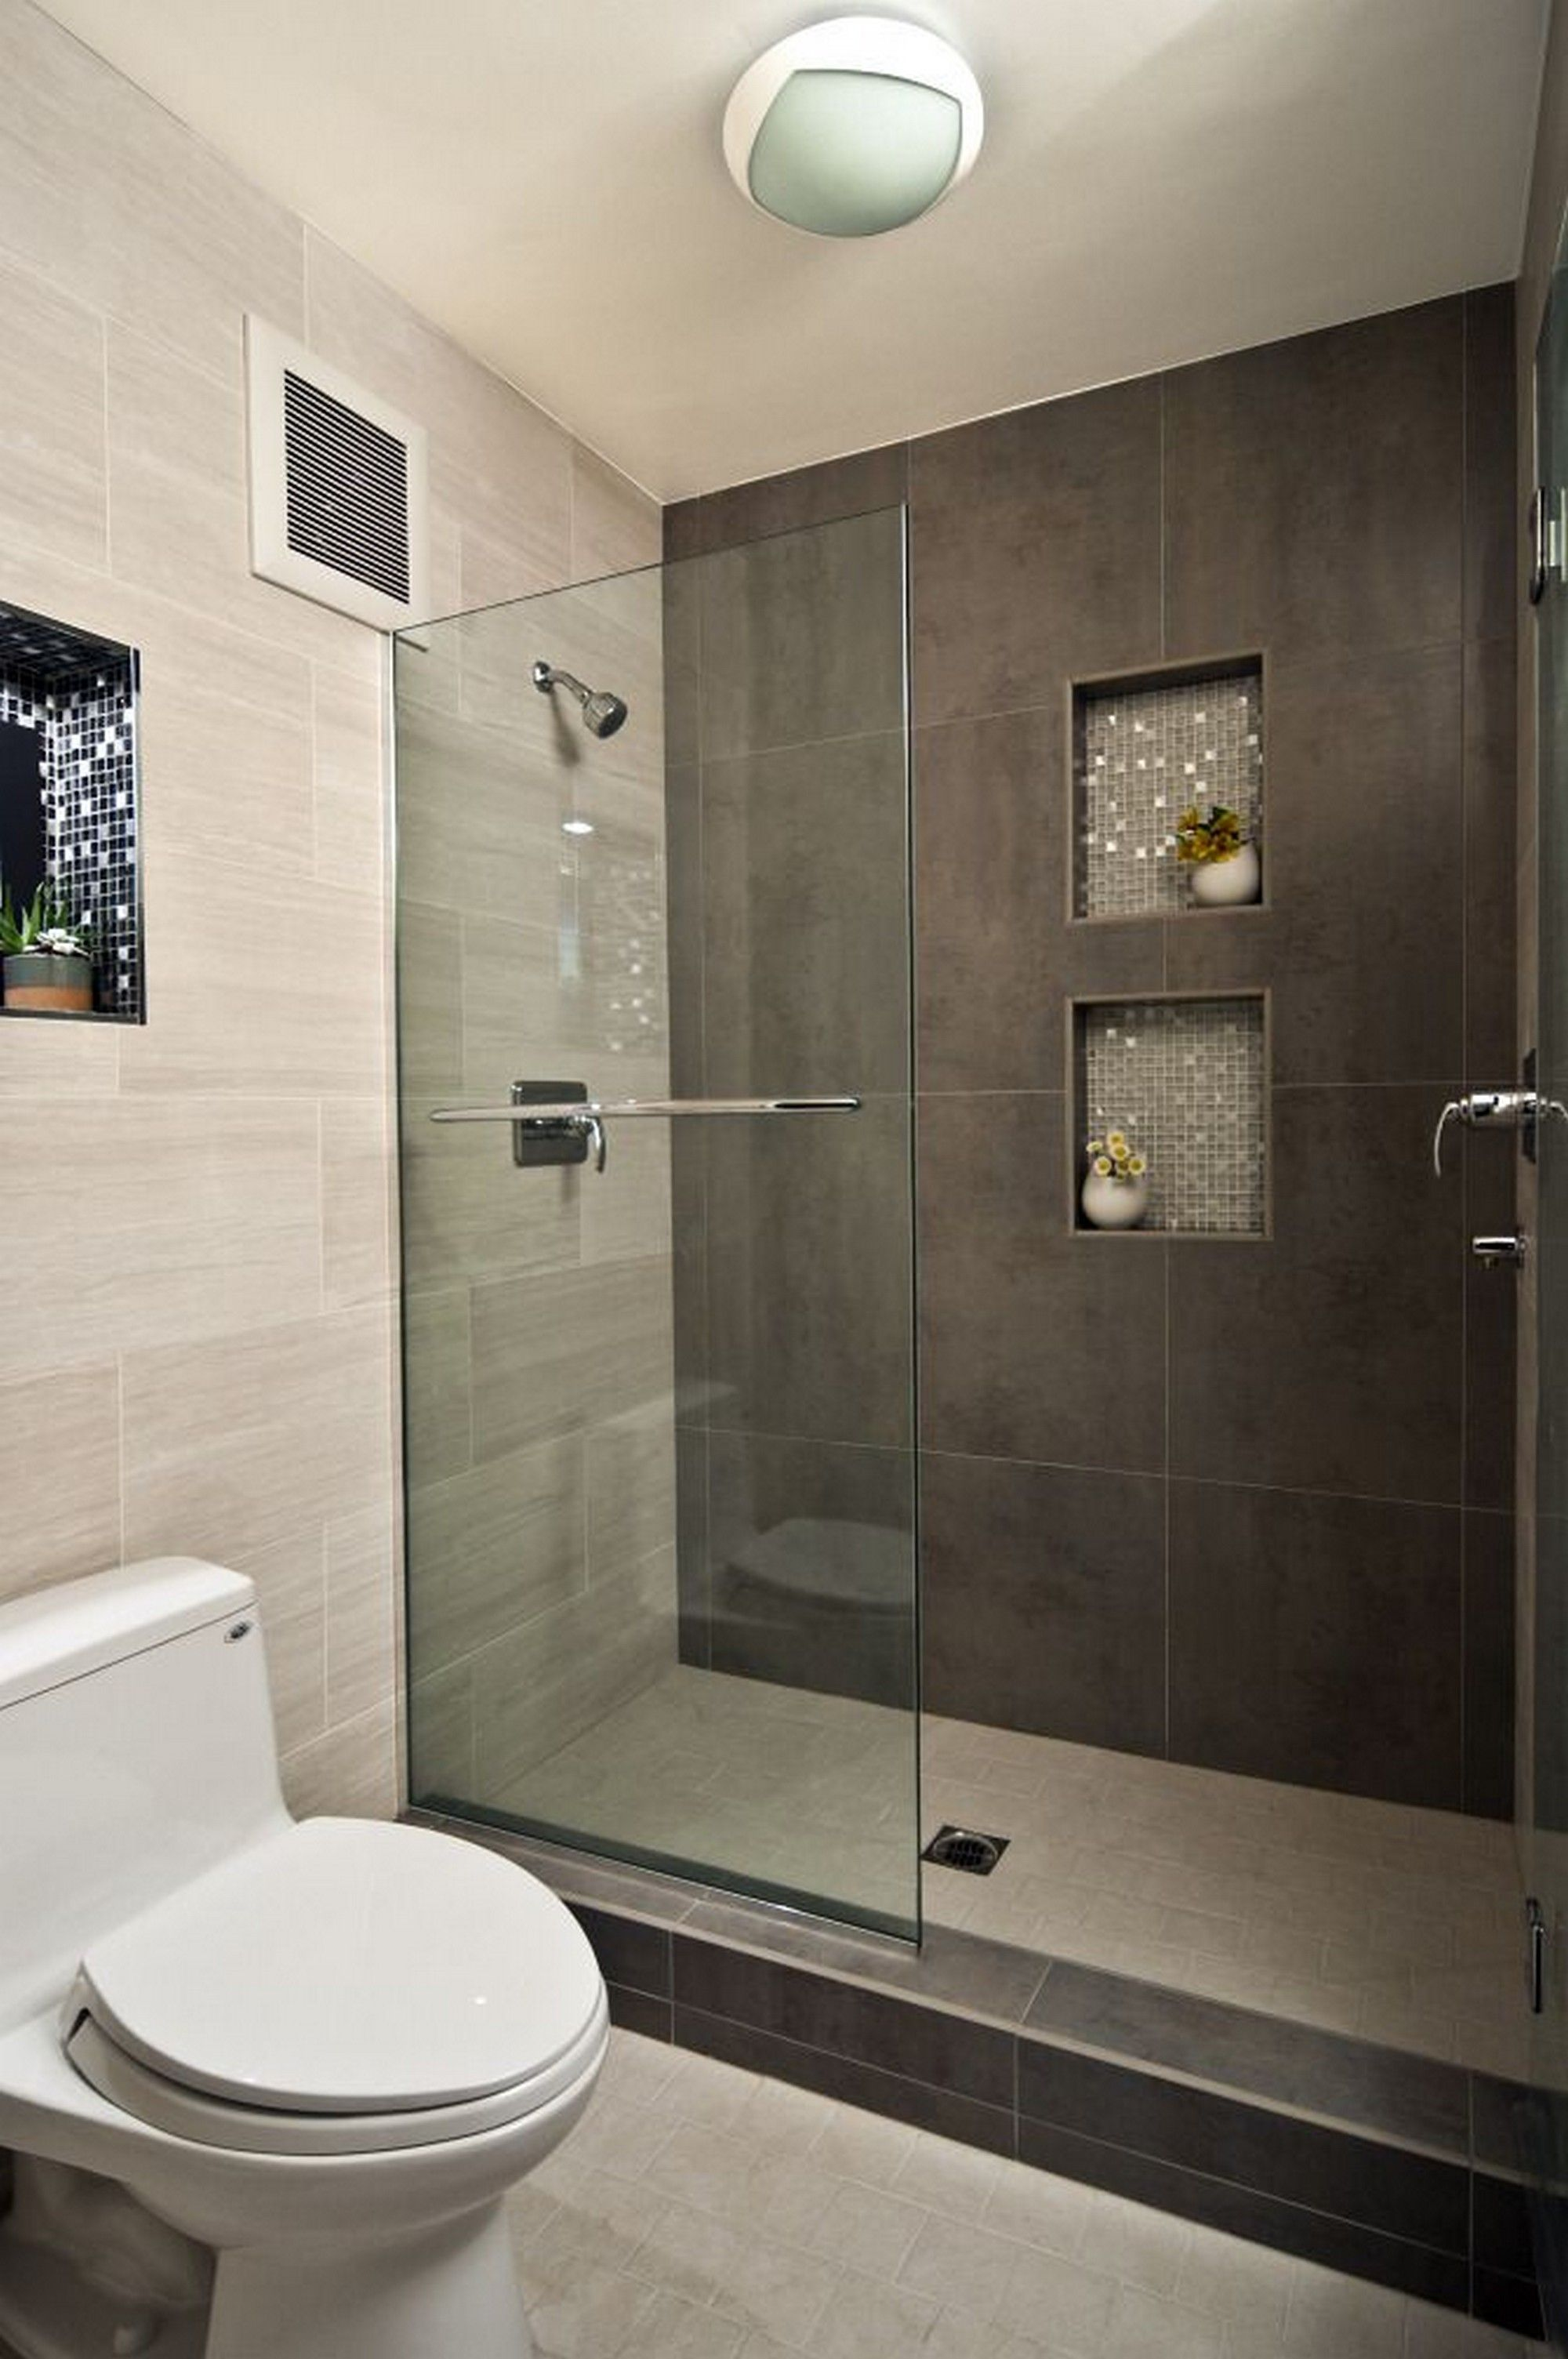 Small bathroom walk in shower ideas - Modern Bathroom Design Ideas With Walk In Shower